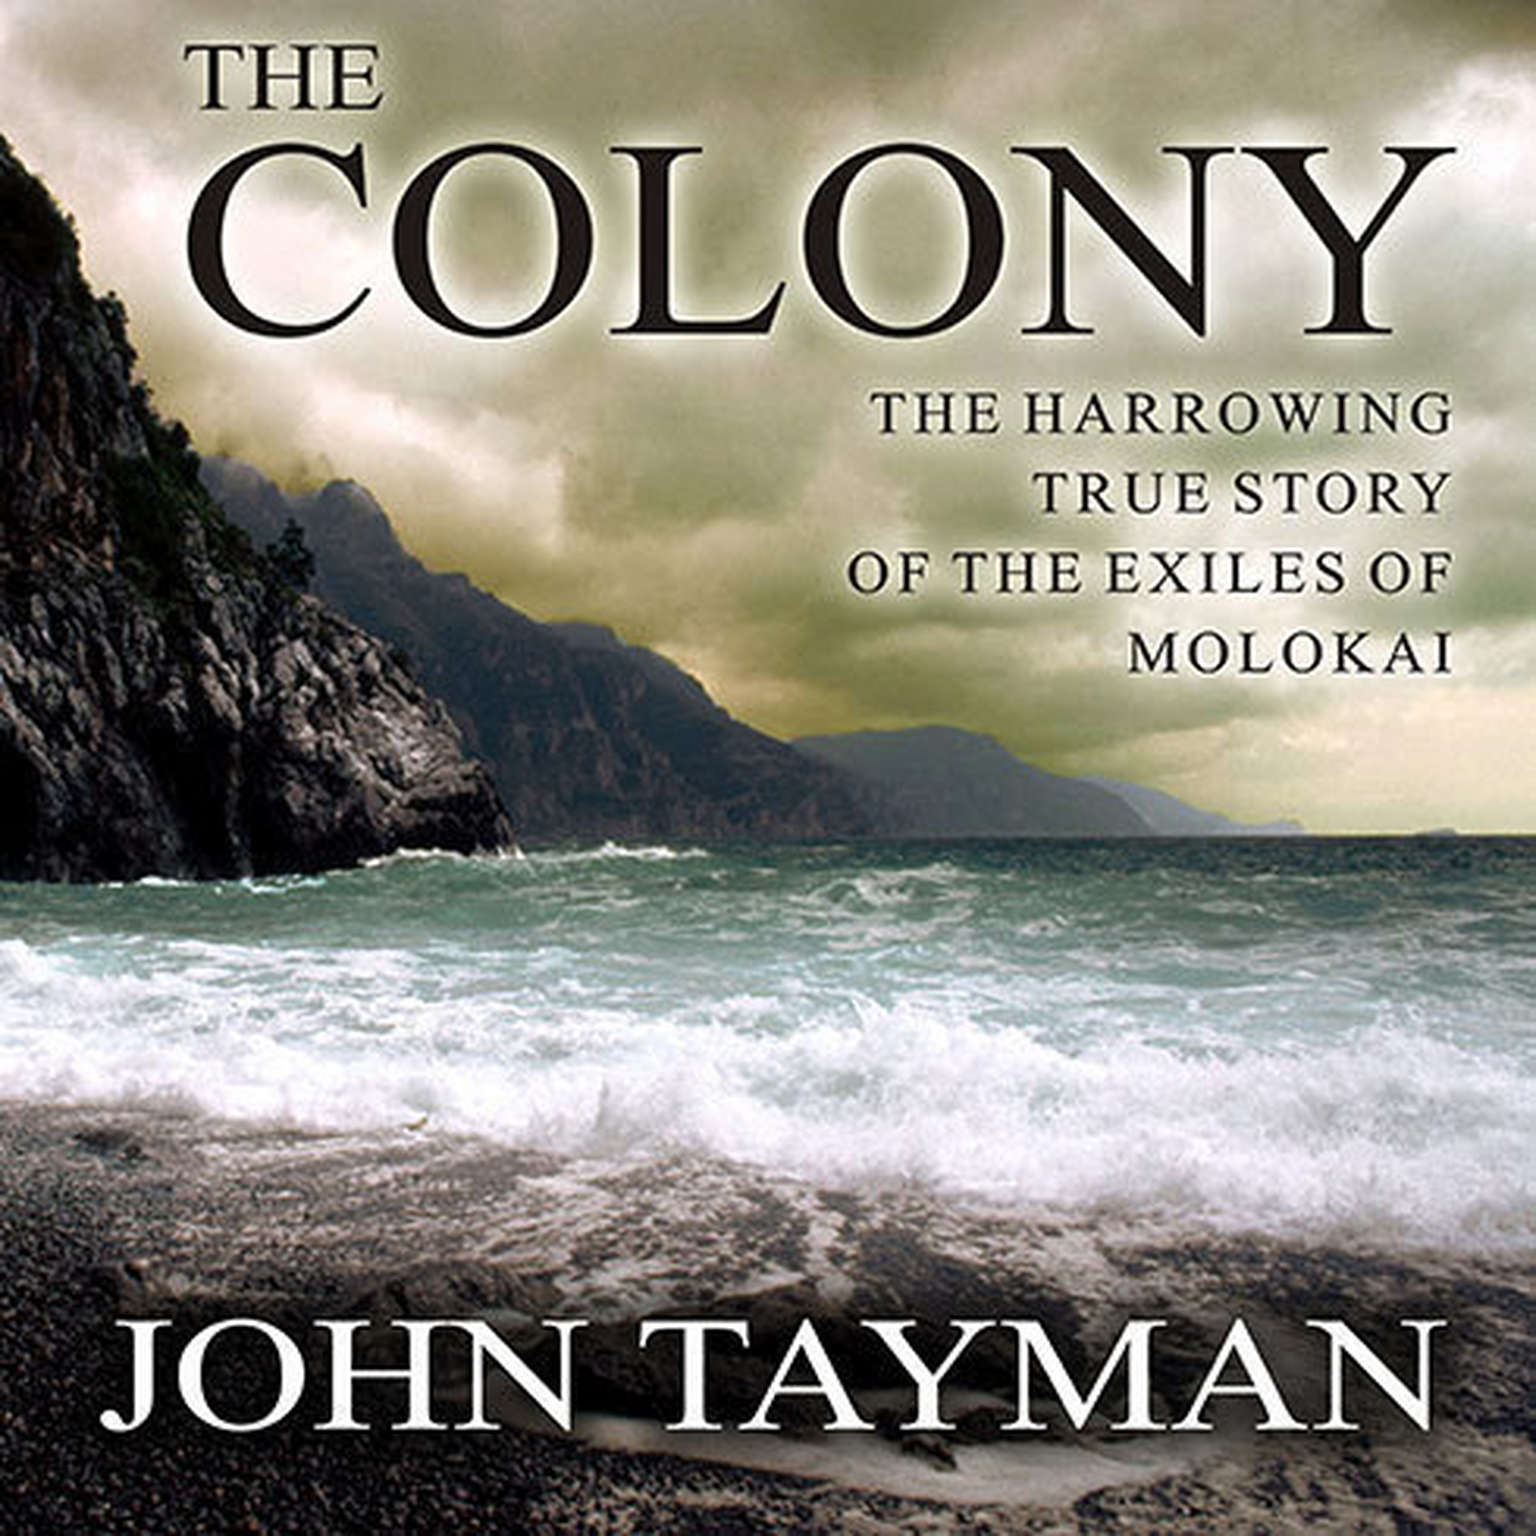 Printable The Colony: The Harrowing True Story of the Exiles of Molokai Audiobook Cover Art